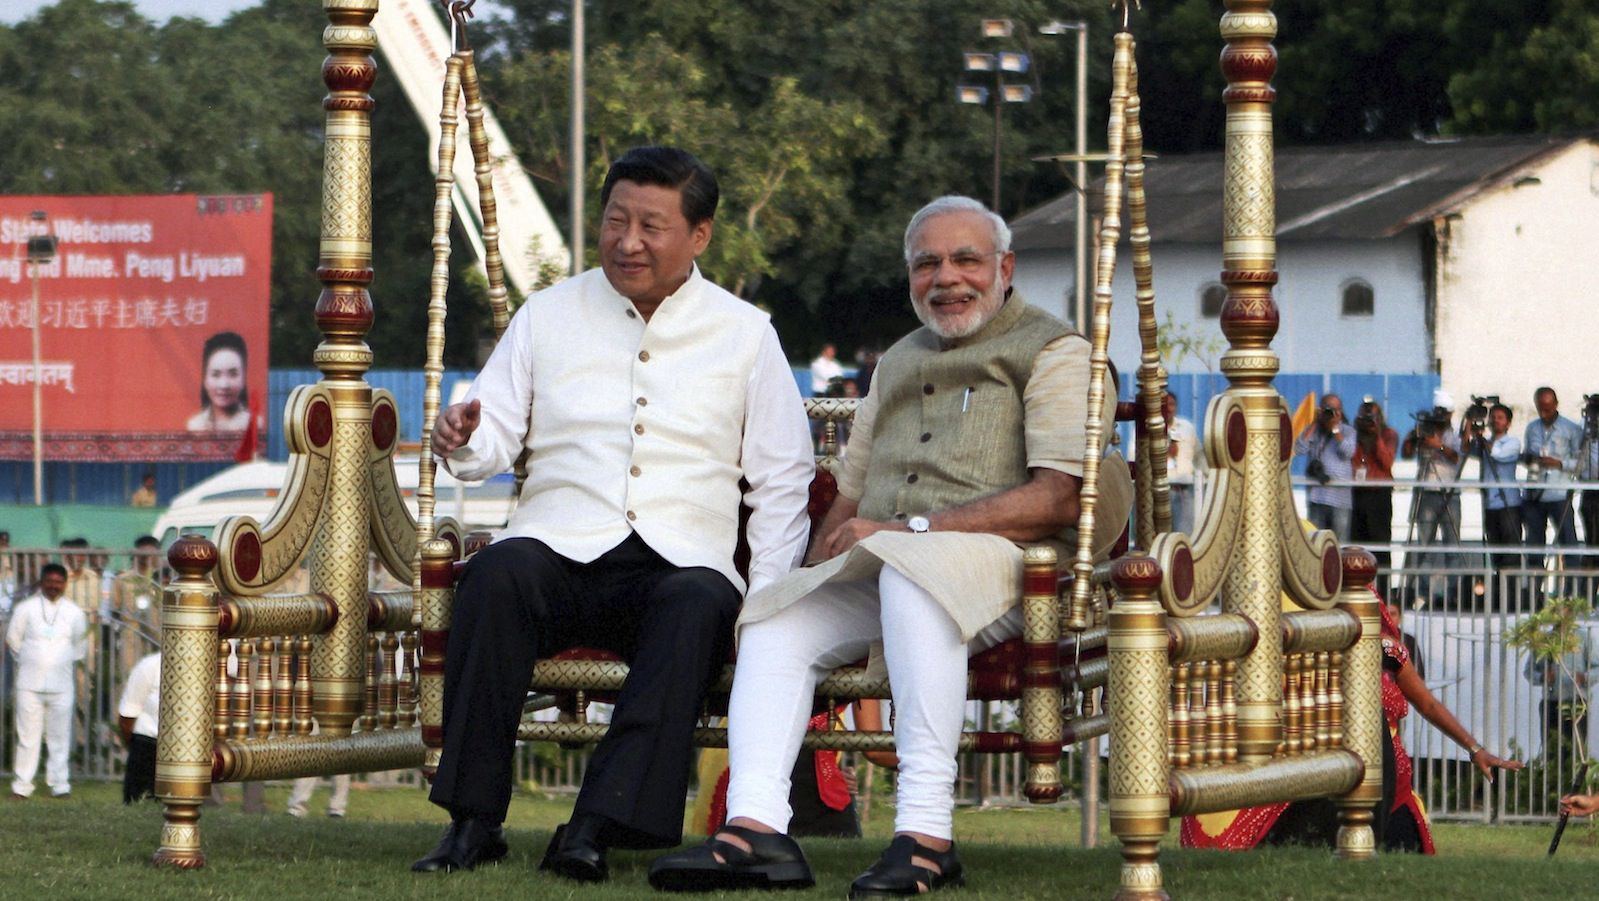 Chinese President Xi Jinping, left and Indian Prime Minister Narendra Modi, sit on a traditional swing at the Sabarmati River front in Ahmadabad, India, Wednesday, Sept. 17, 2014. Xi landed in the Indian prime minister's home state of Gujarat on Wednesday for a three-day visit expected to focus on India's need to improve worn out infrastructure and reduce its trade deficit. (AP Photo/Press Trust of India) INDIA OUT